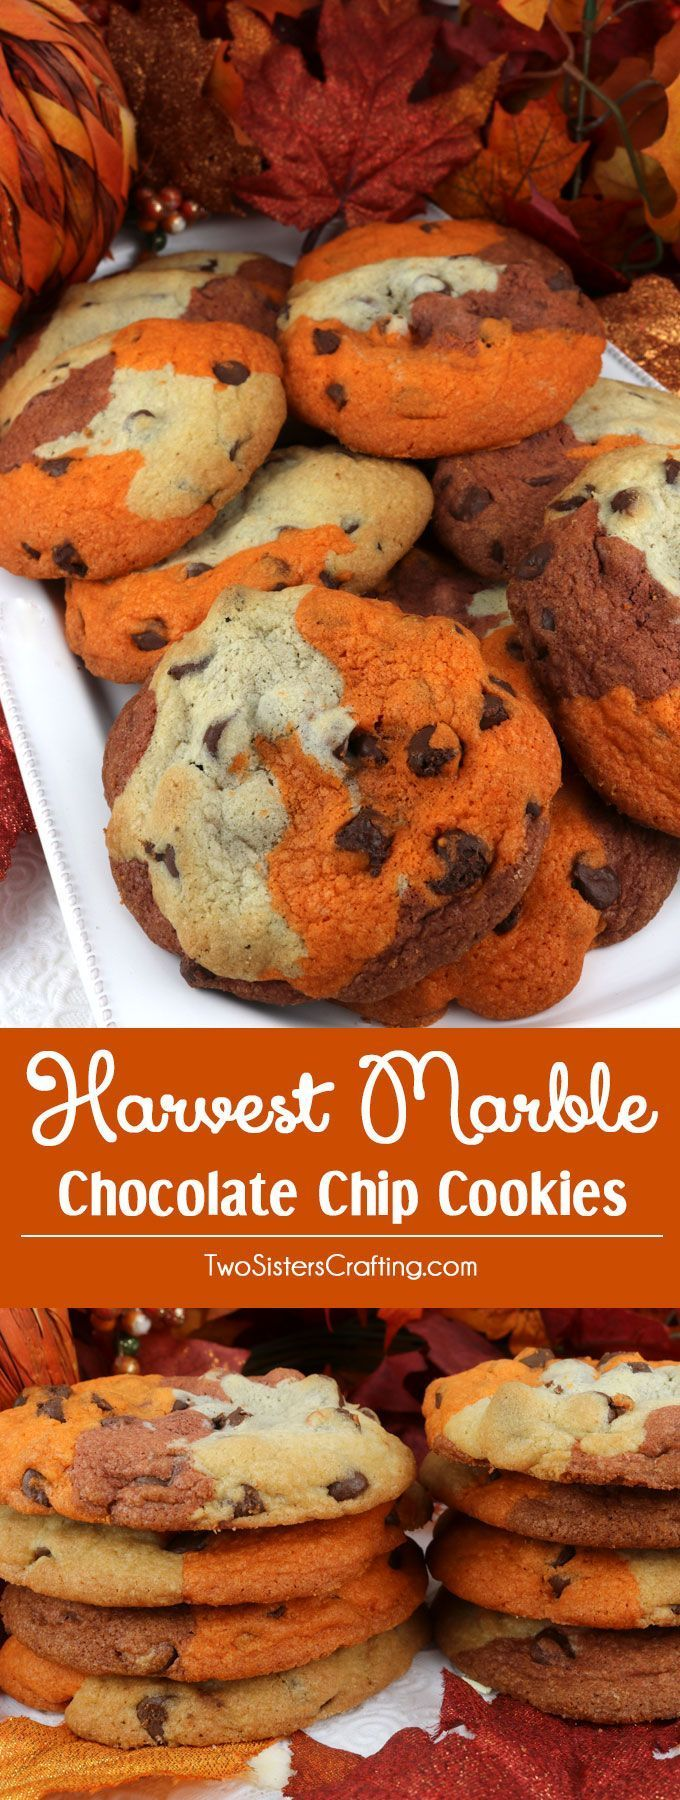 Marble Chocolate Chip Cookies Harvest Marble Chocolate Chip Cookies - a classic cookie all dressed up for Fall and Thanksgiving.  This unique and tasty Thanksgiving cookie would be great Thanksgiving dessert idea for a potluck dinner, a fall bake sale or a Christmas Cookie exchange. Pin this delicious marble cookie recipe for later and follow us fo